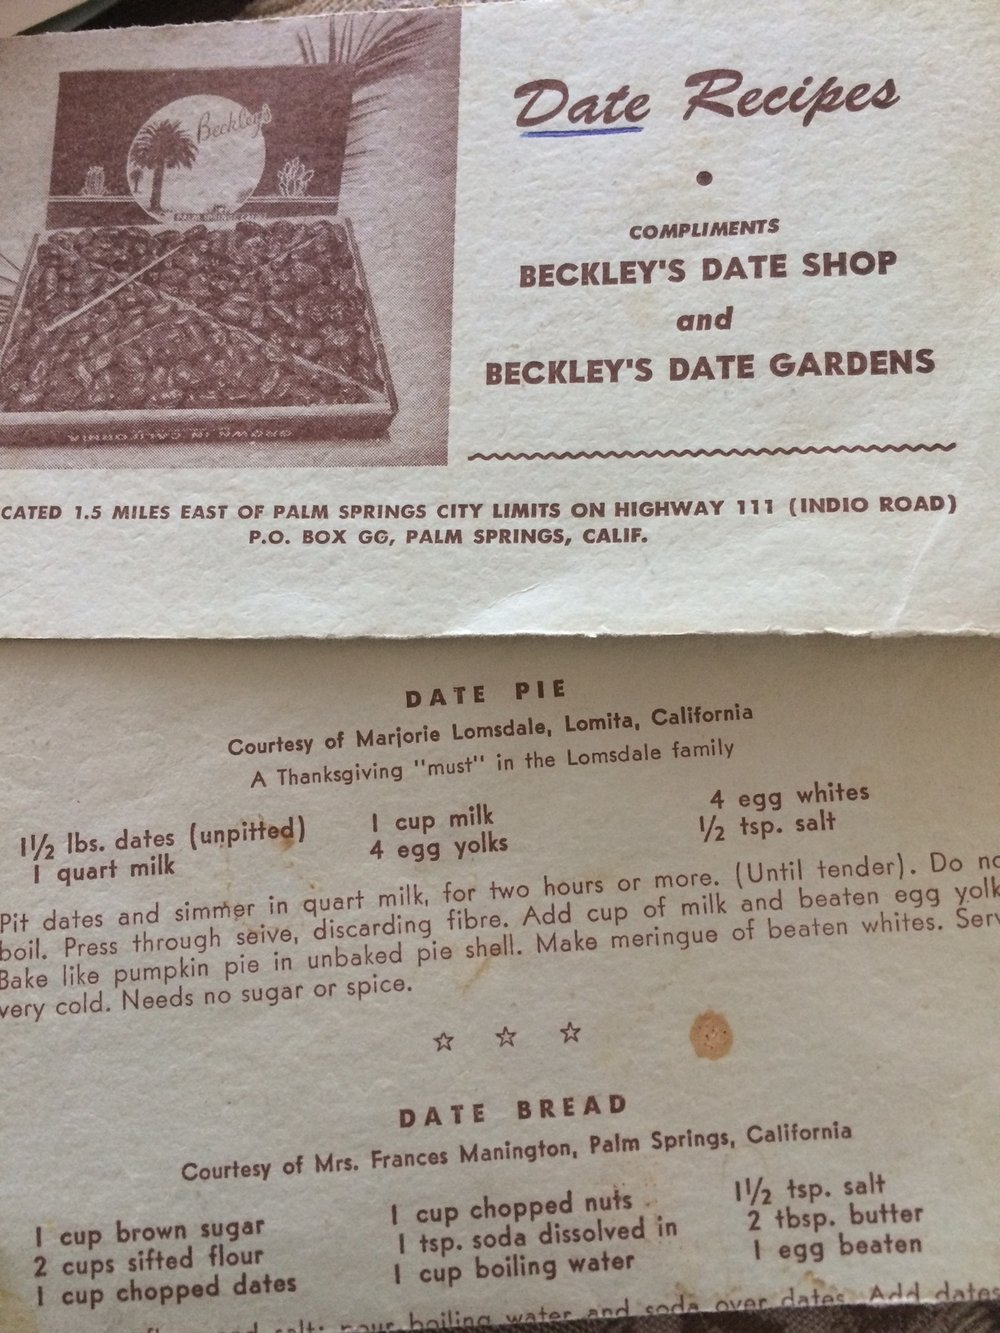 My stepmom Margie's recipe published by Beckley's Date Shop, circa 1955.  Notice the underlined word, Date.  It indicates where this card was filed in her 3x5 scotch plaid recipe box.